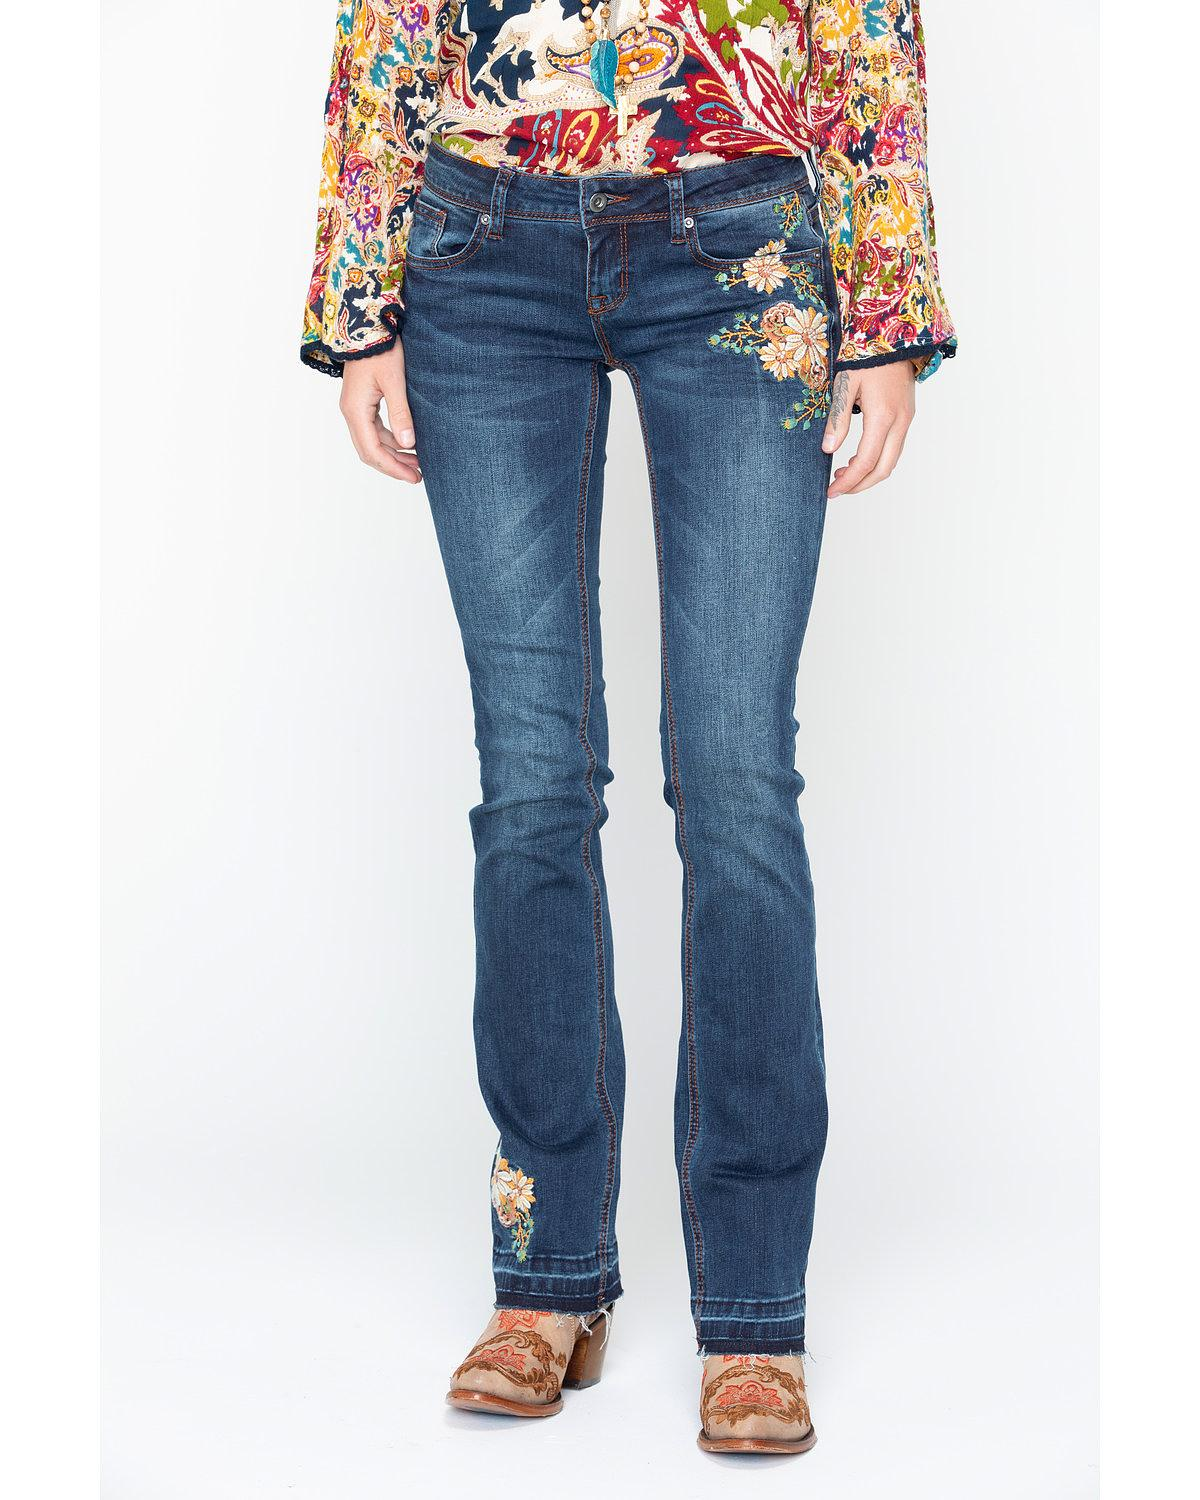 Grace In LA Women's Floral Embroidered Boot Cut Jeans - JB71040